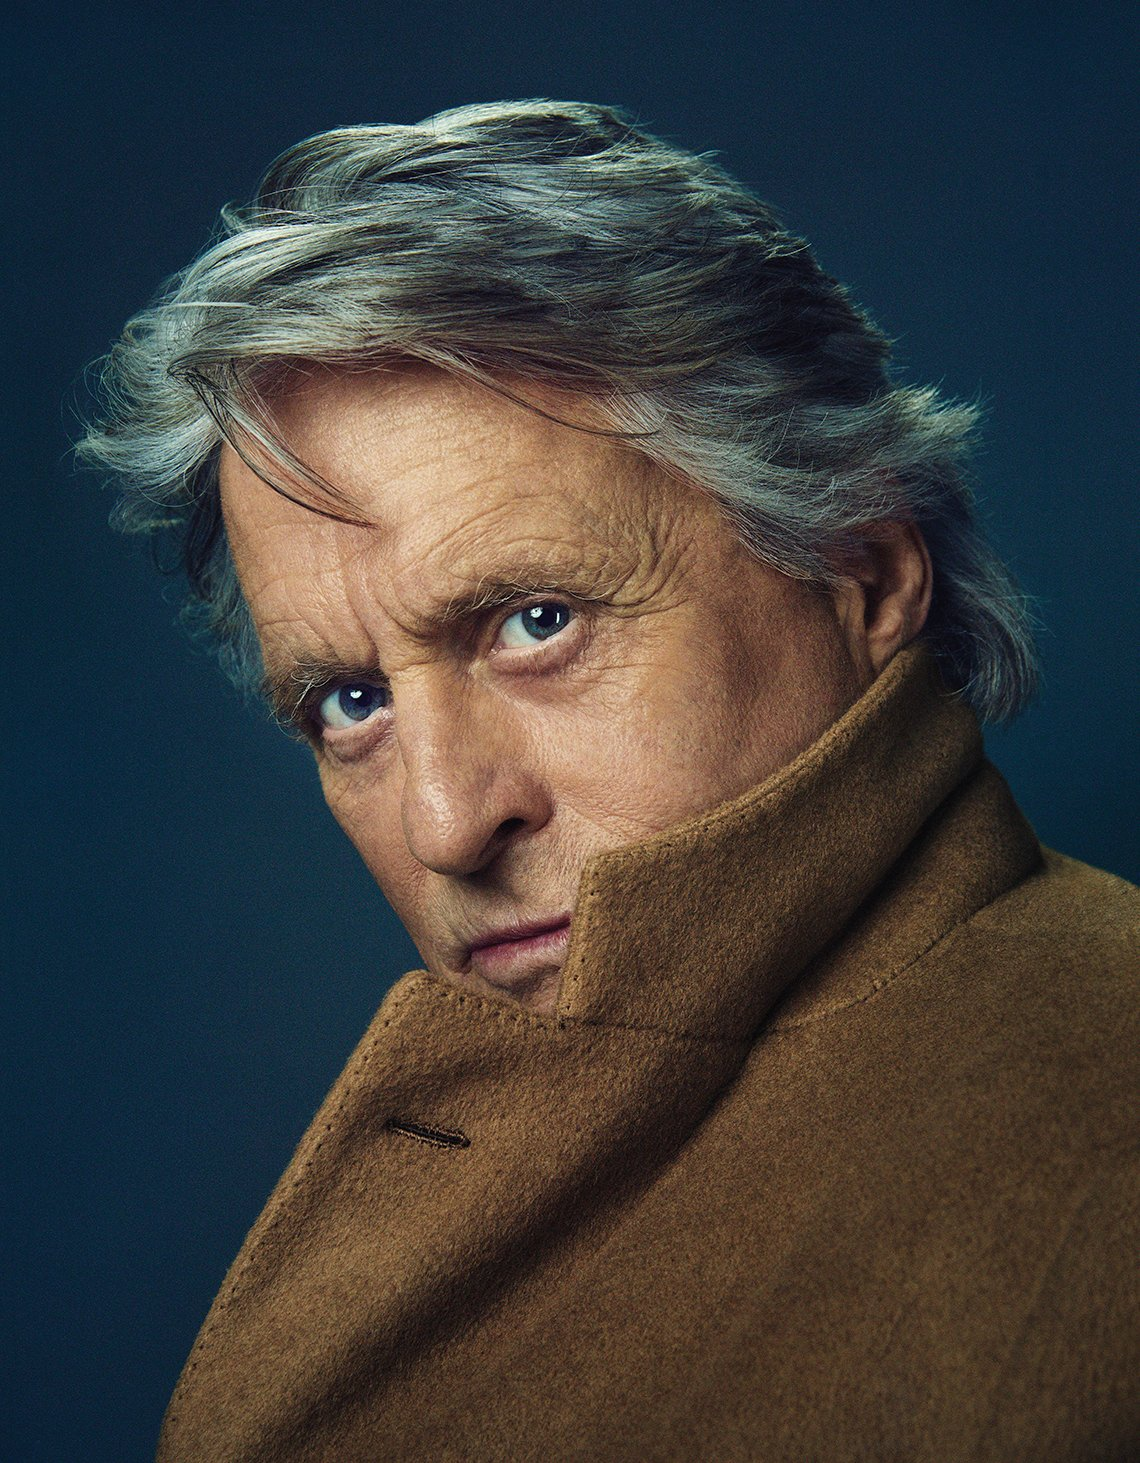 closeup portrait of actor michael douglas